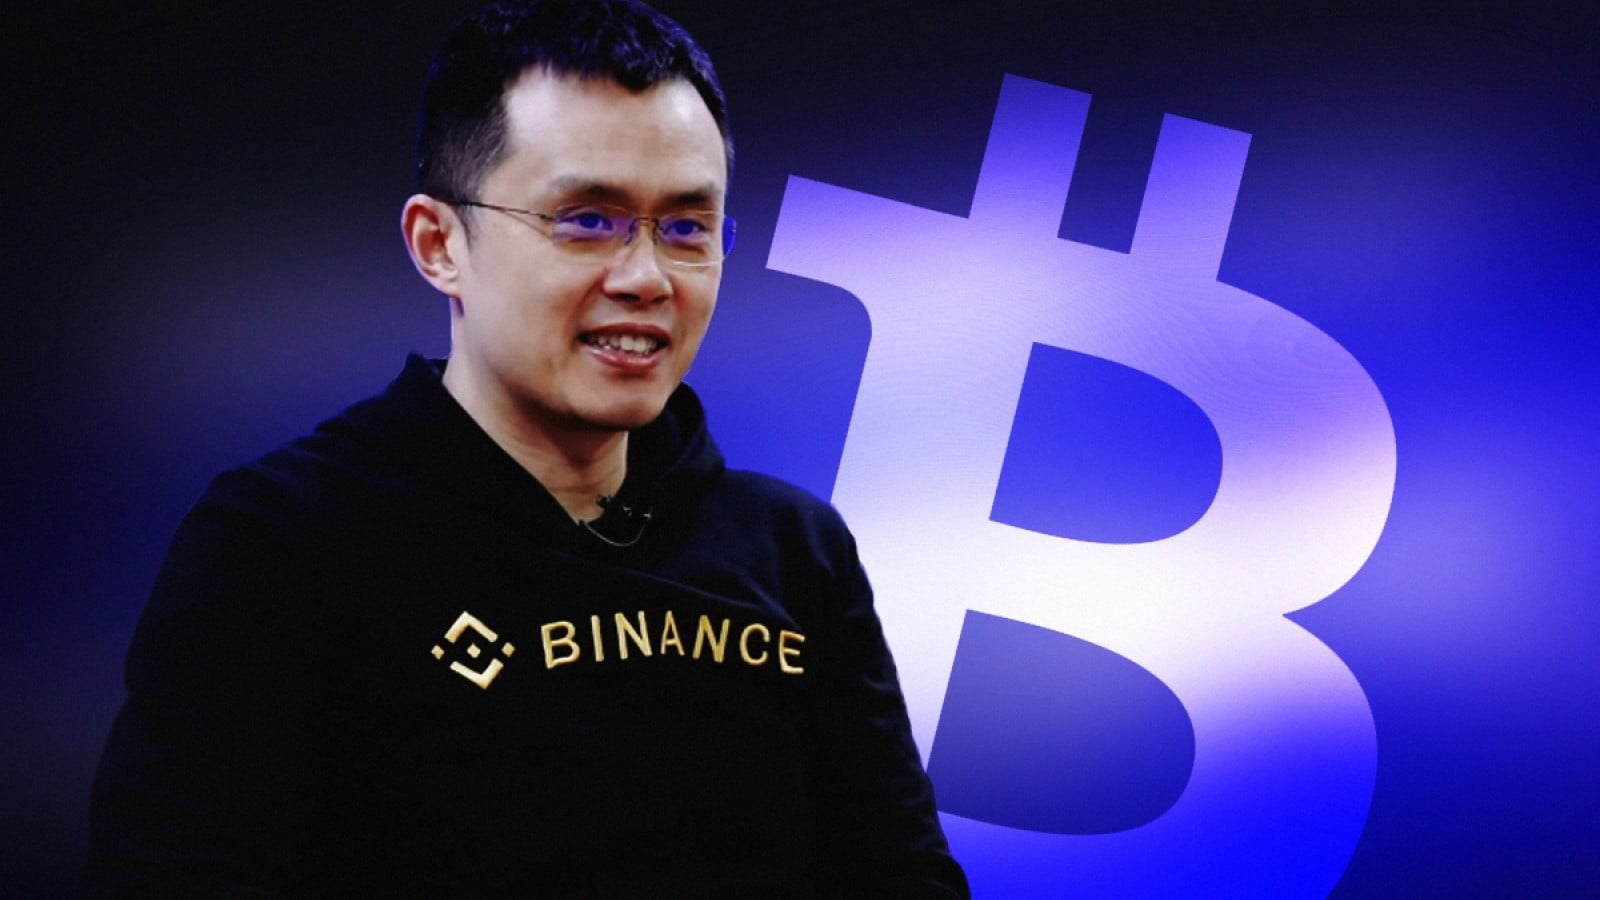 Bitcoin Price Predicted to Go to 16000 Soon ish by Binance CEO Chanpeng Zhao.JPG - Binance CEO Reassures Crypto Traders: Bitcoin Will Not Drop To $0